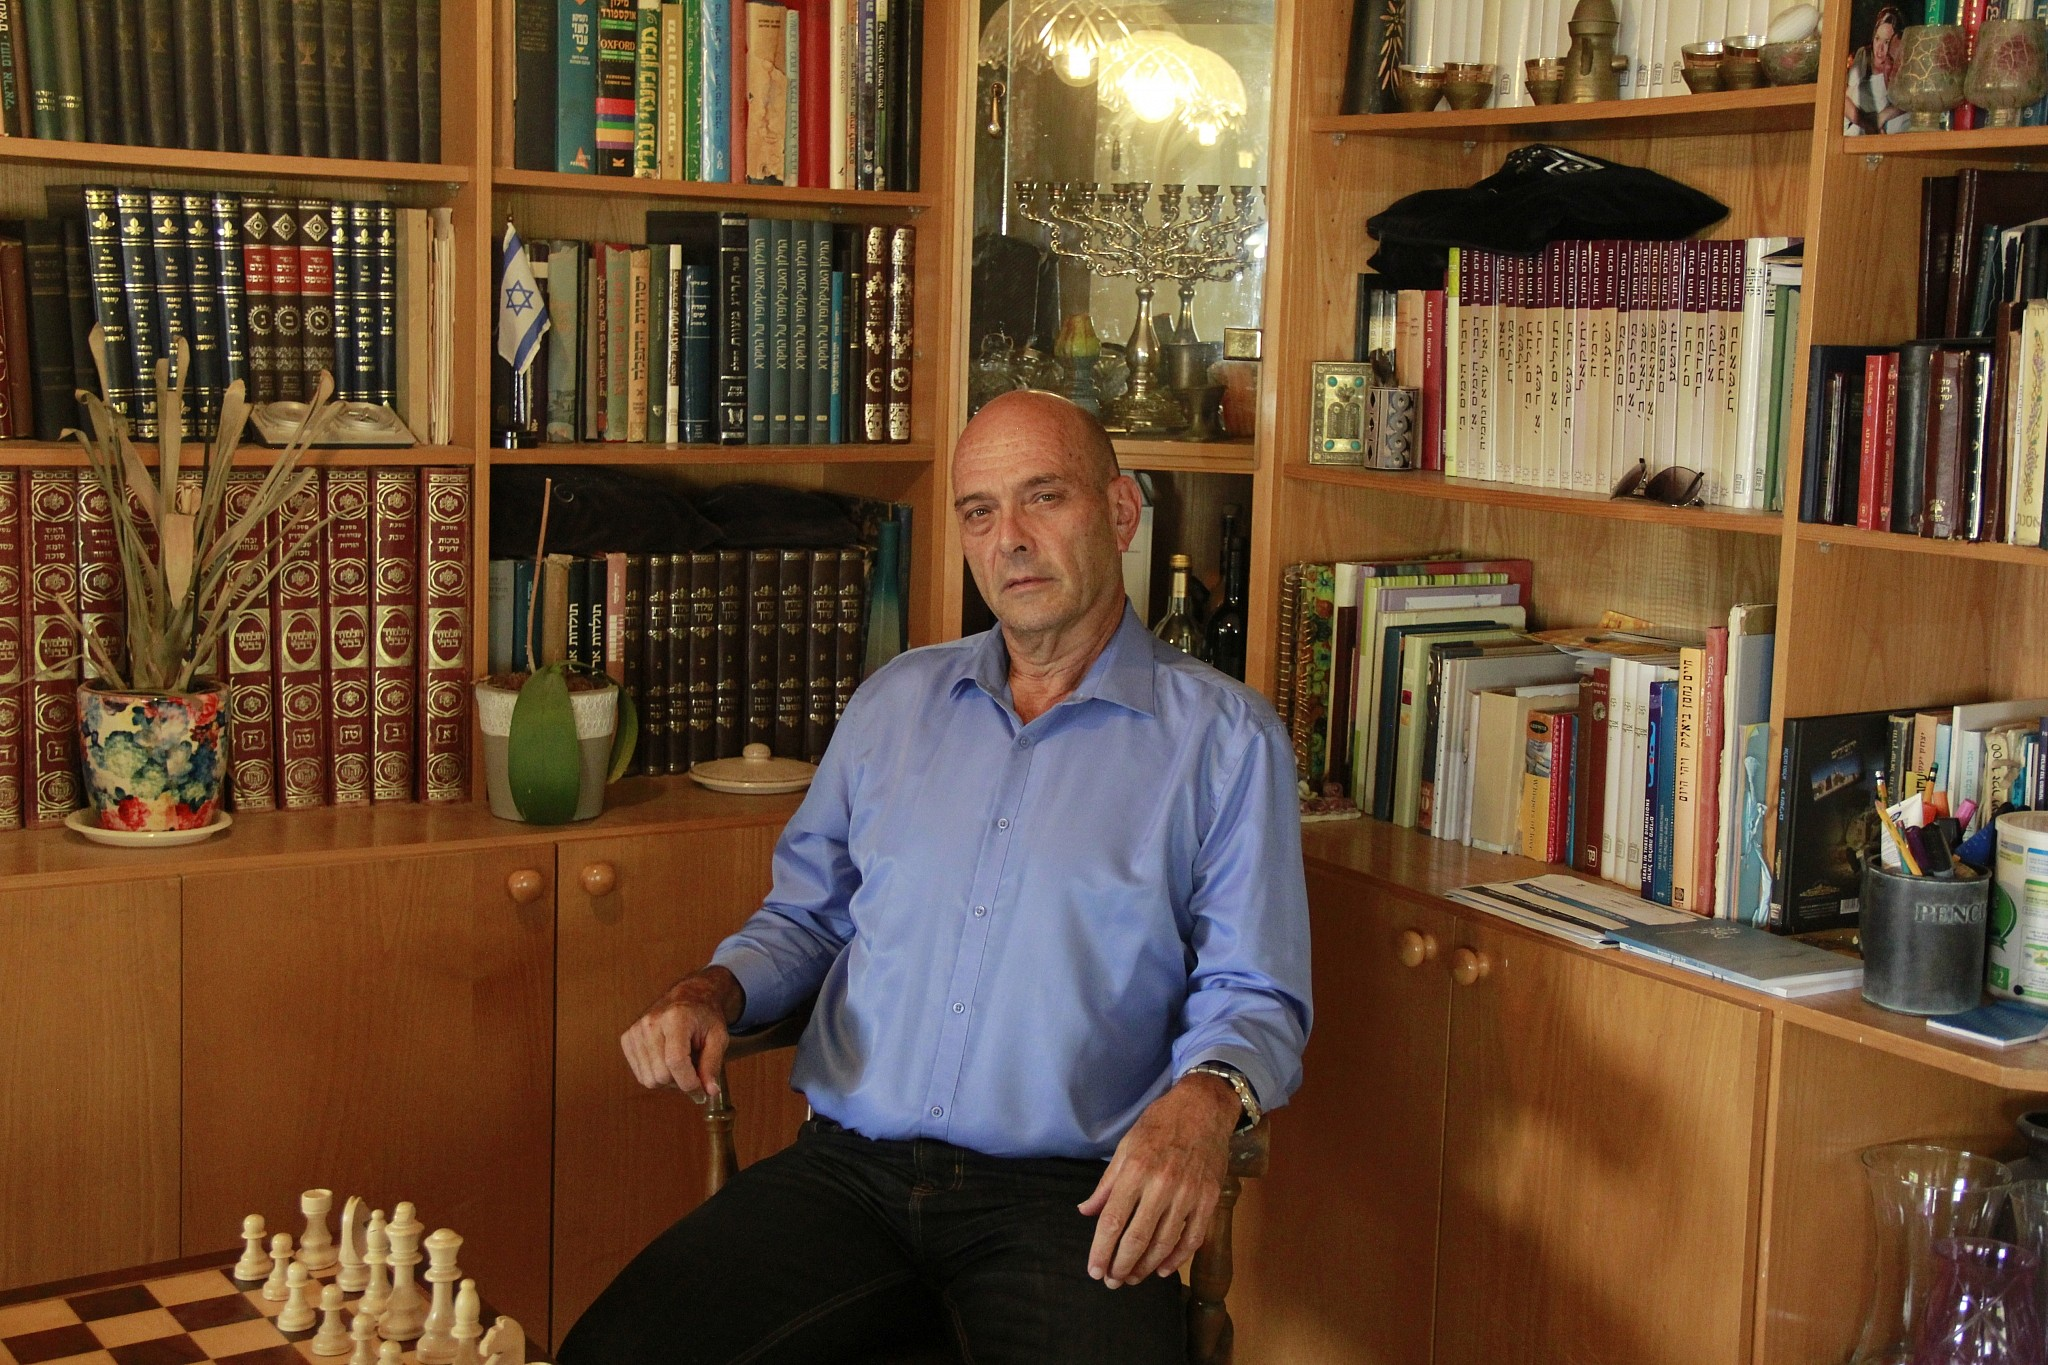 Avi Arieli at home in Kfar Adumim in the West Bank settlement on October 21, 2018. (Jacob Magid/Times of Israel)